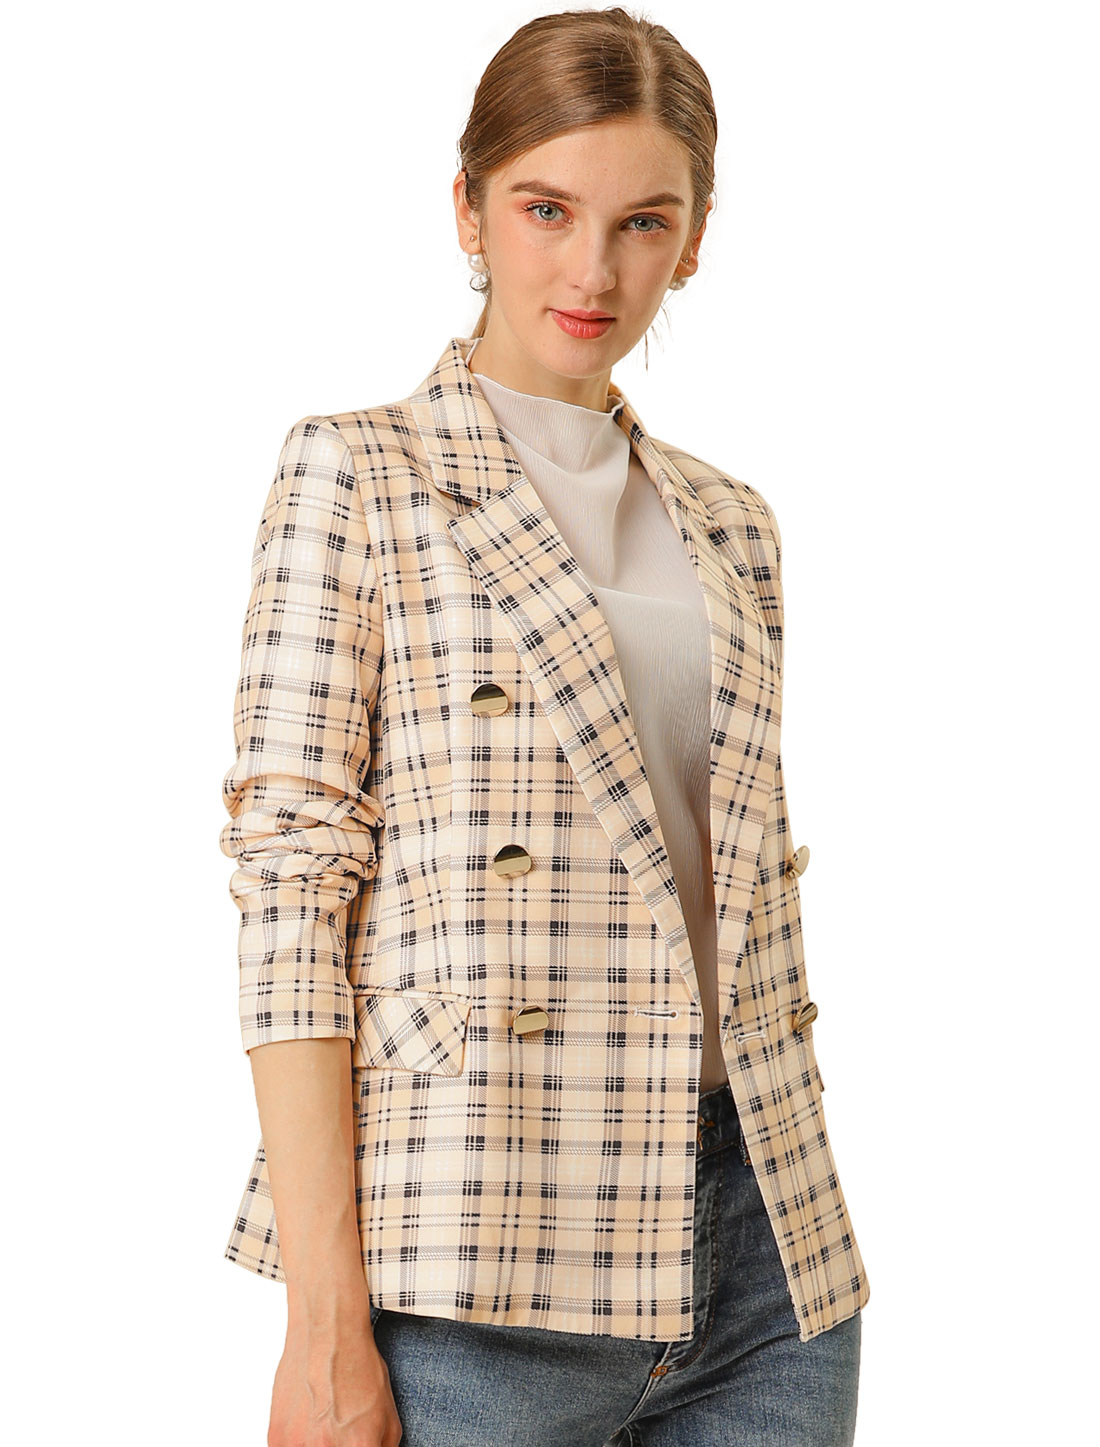 Allegra K Women Plaid Checks Outwear Blazer Jacket Pink Apricot XL